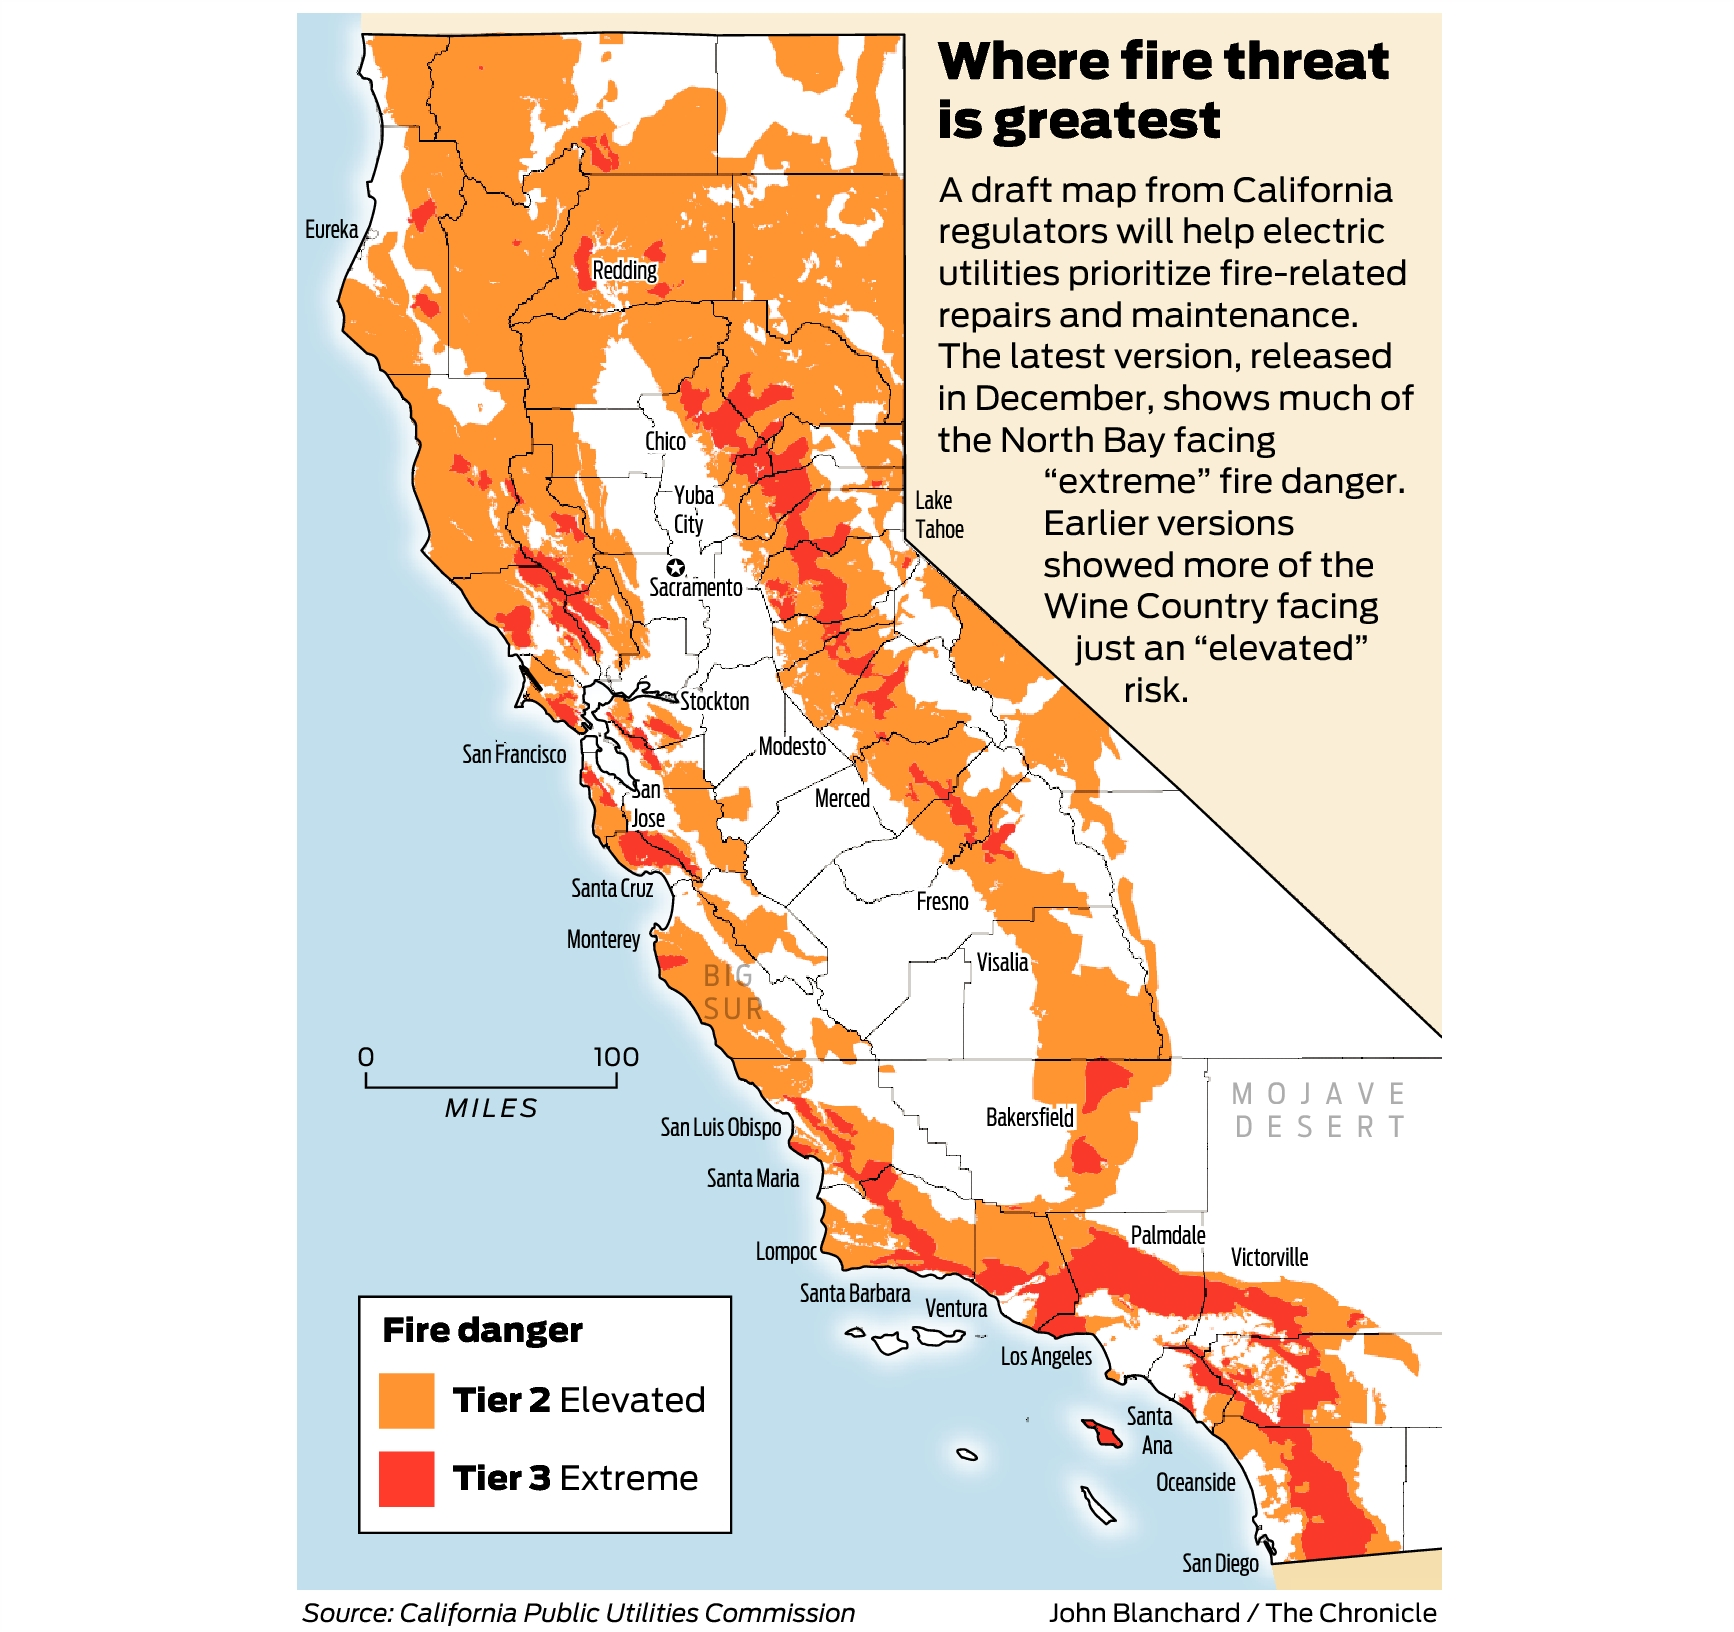 California Fire Threat Map Not Quite Done But Close Regulators Say Sfchronicle Com